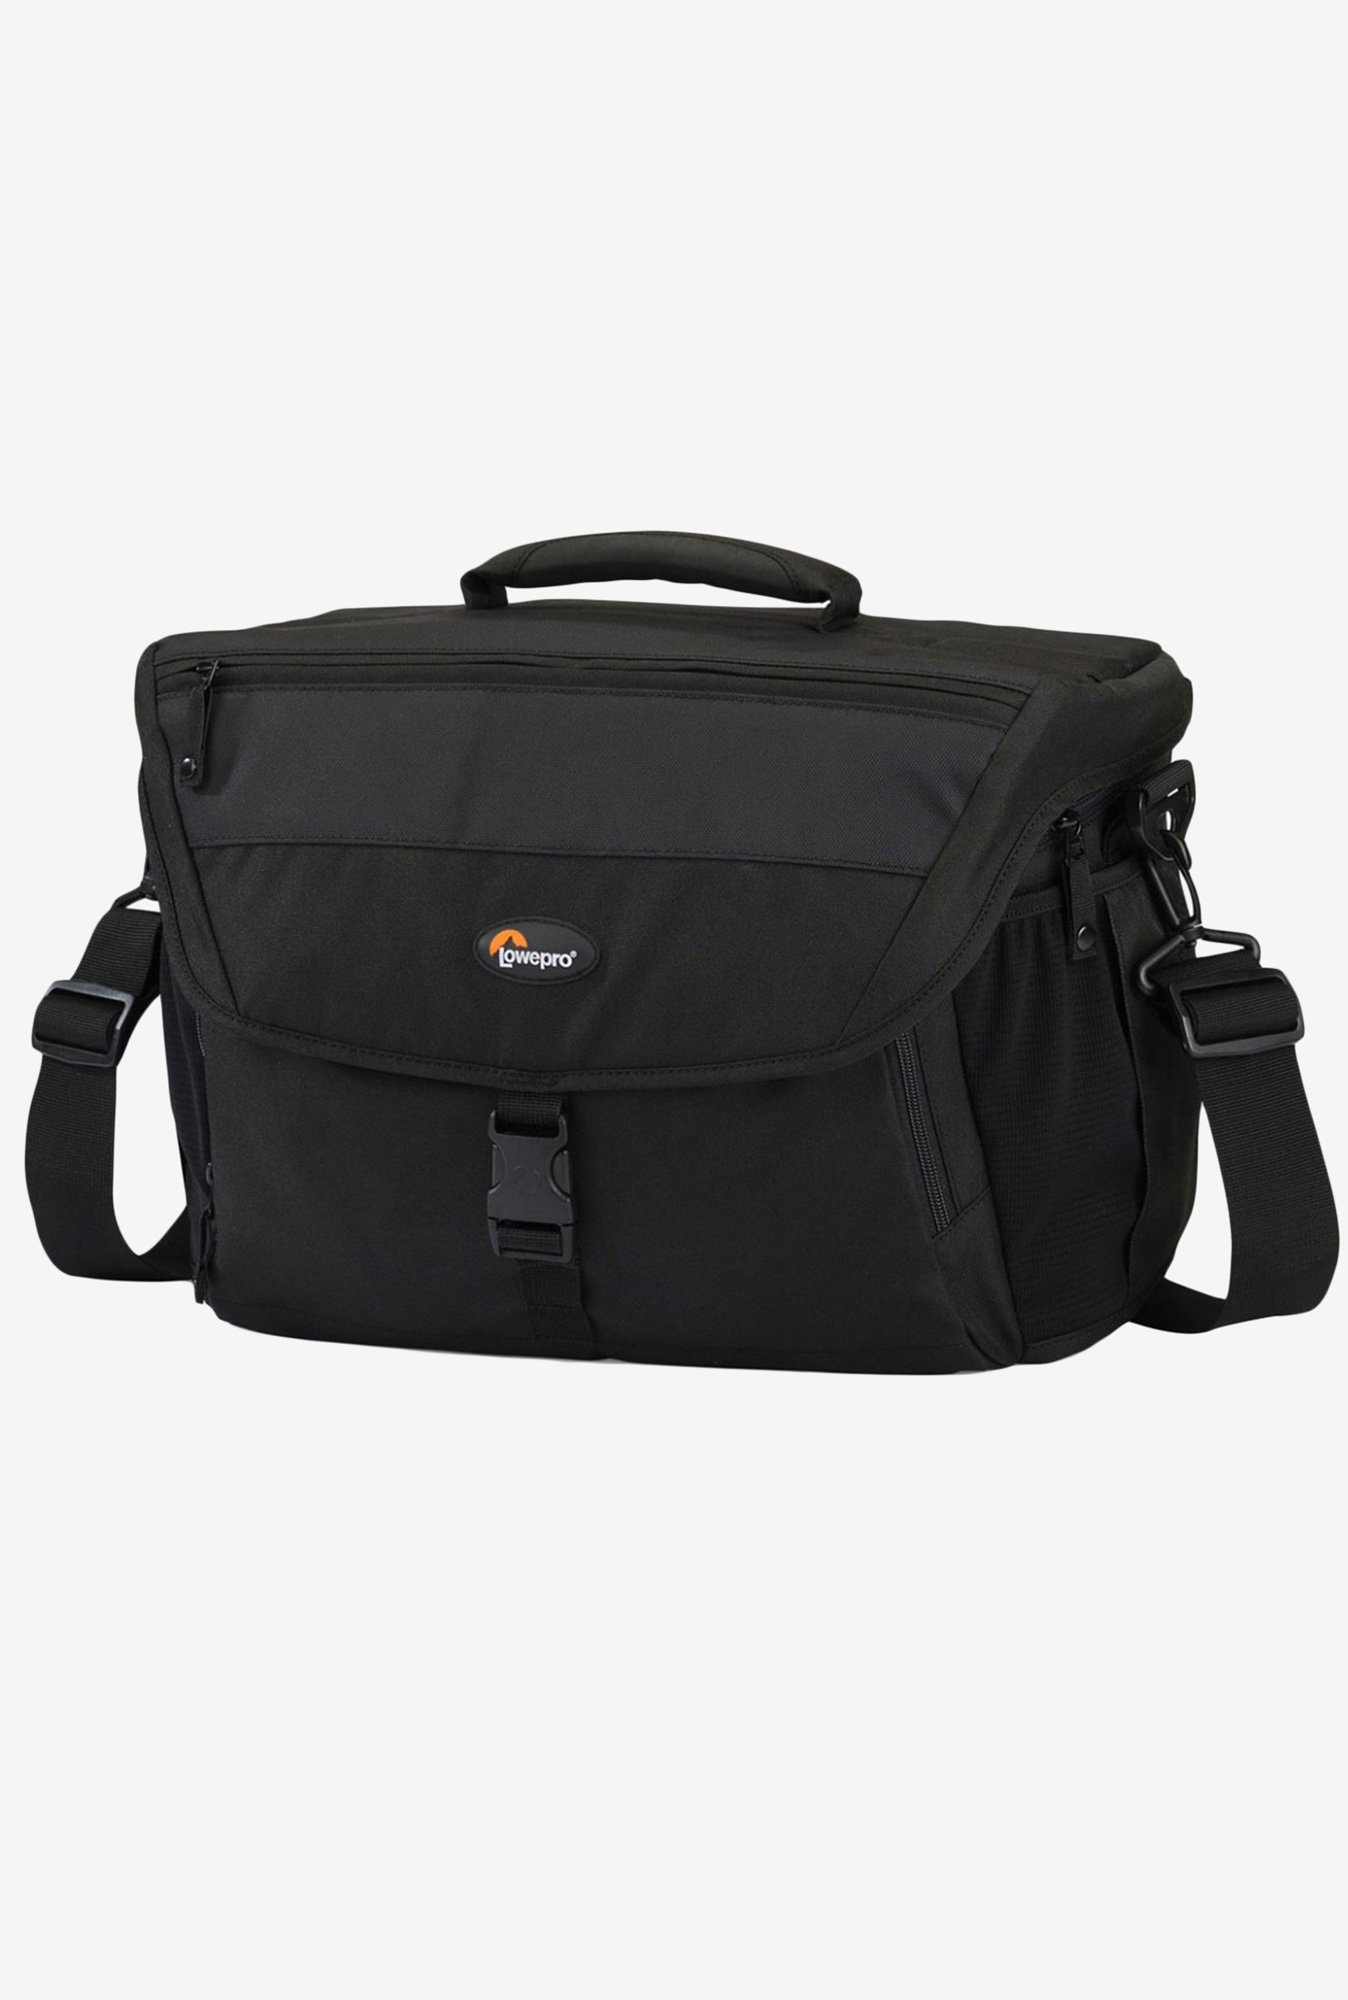 Lowepro Nova 200AW Shoulder Bag Black